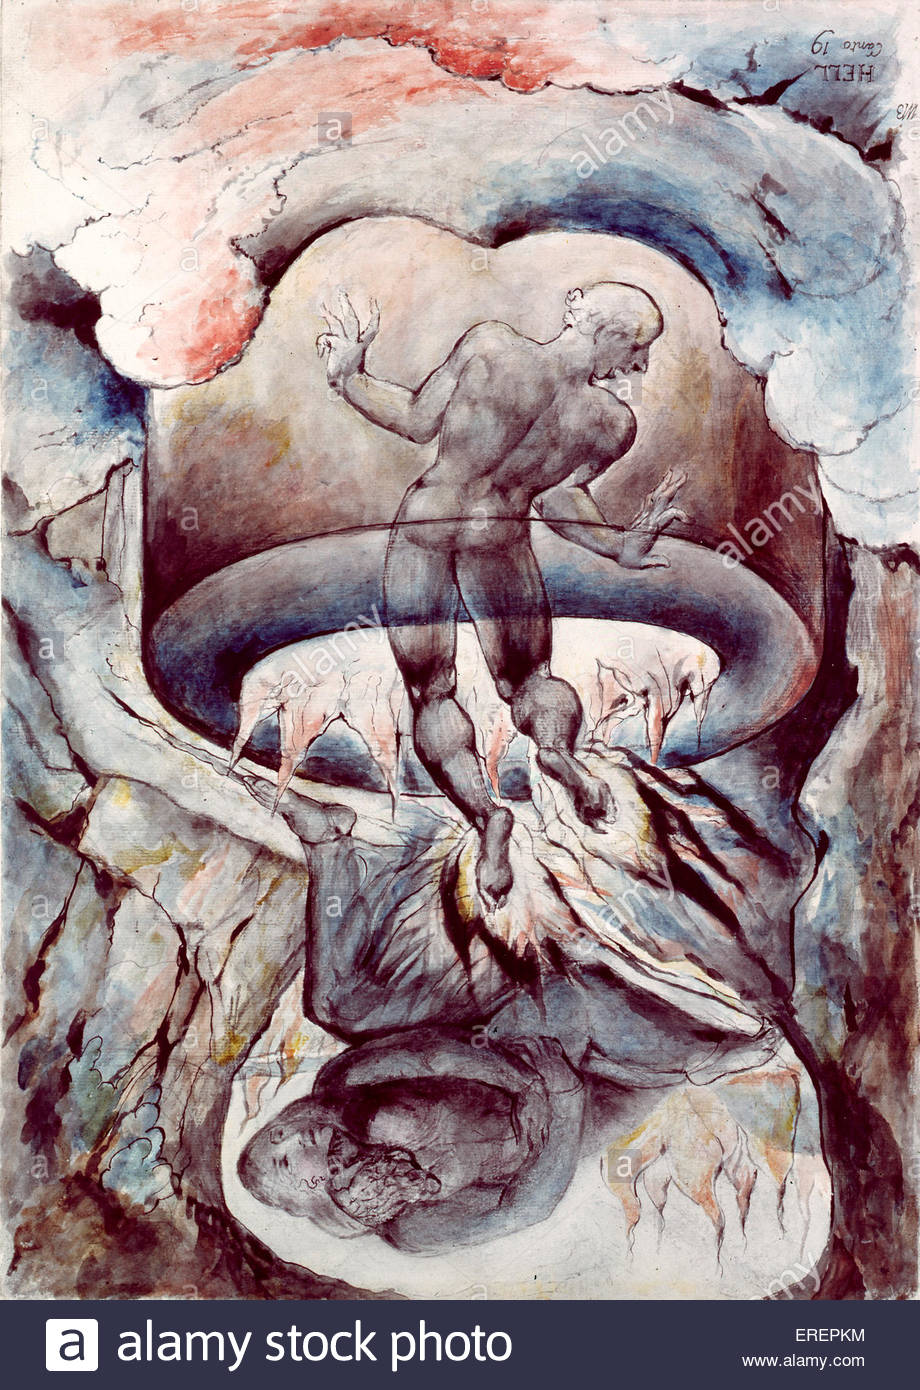 The Simoniac Pope by William Blake, 1824- 27. Shows Pope Nicholas III 's punishment for simony by being suspended - Stock Image